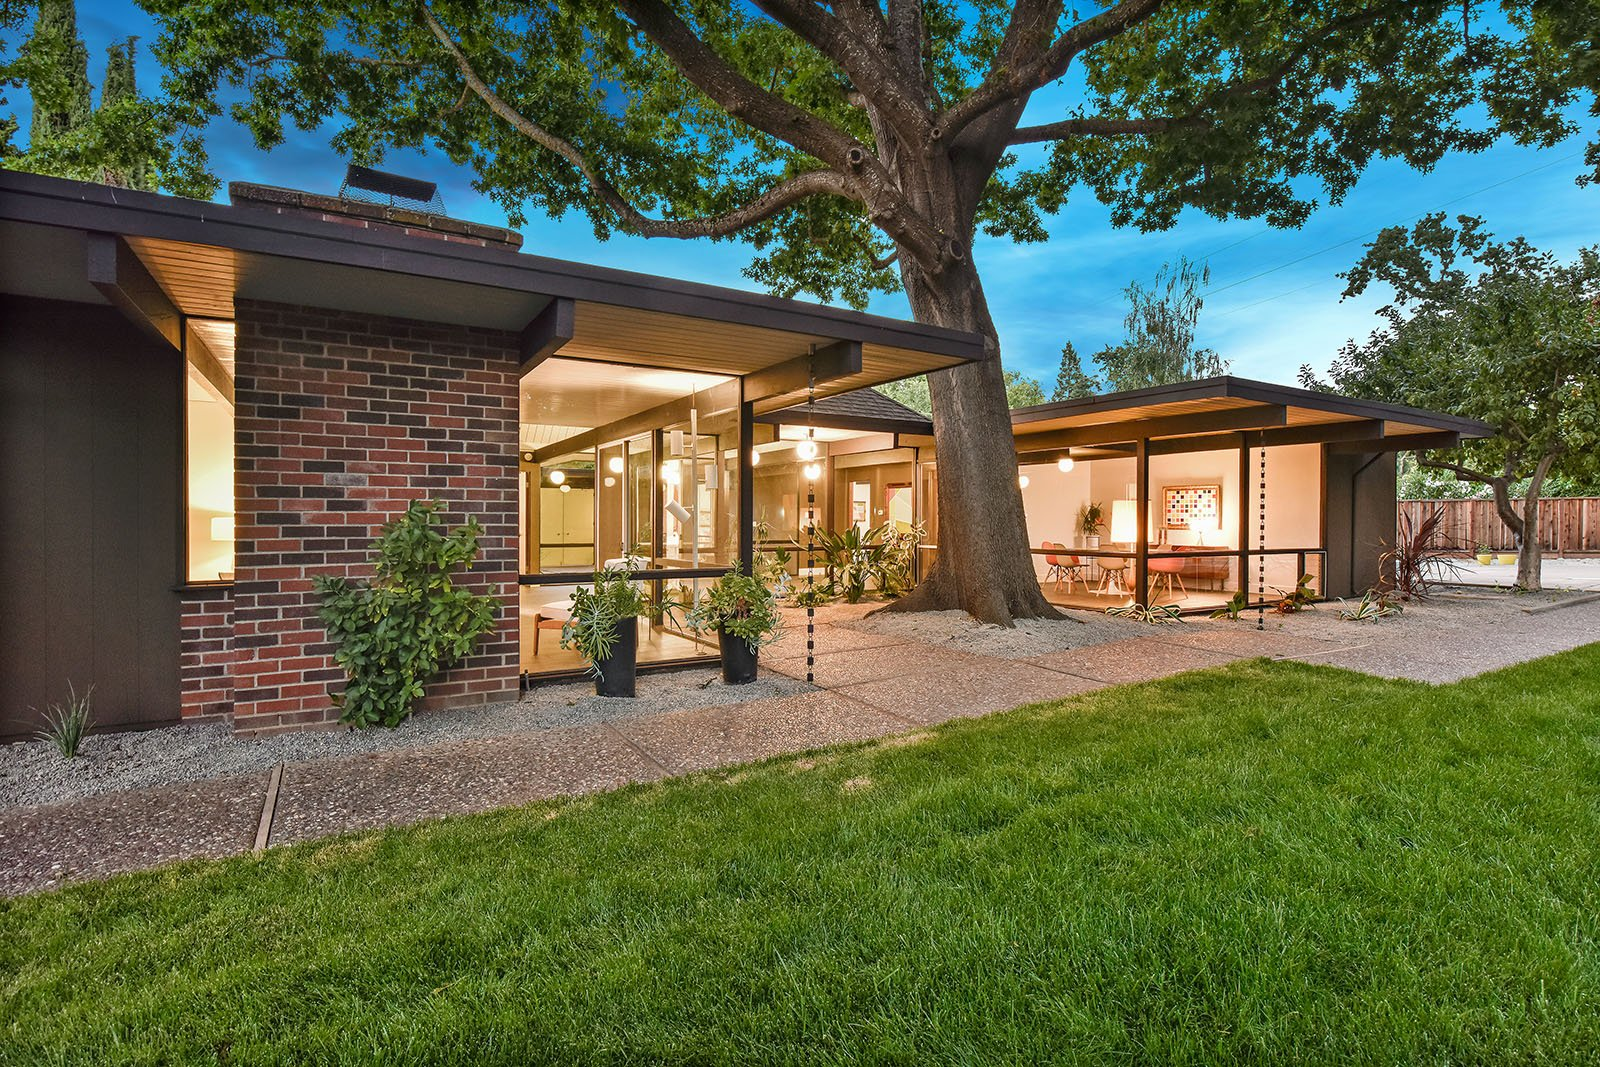 big size Eichler in Walnut Creek - exterior